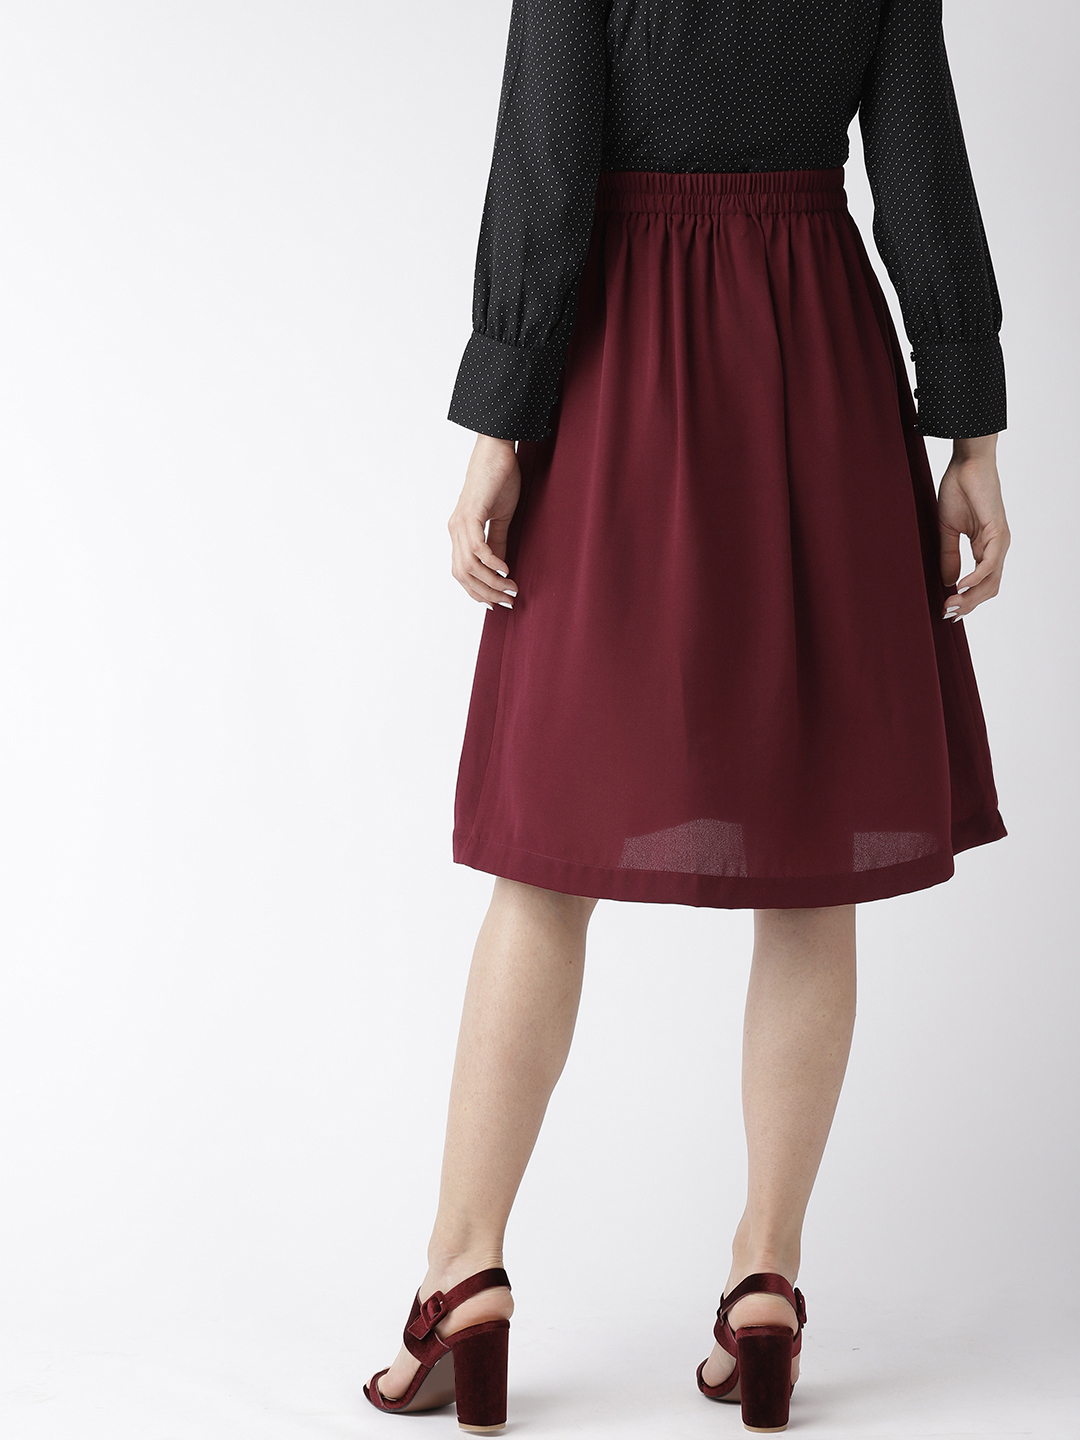 Shorts and Skirts-The Sweet Spot Button Down Skirt3